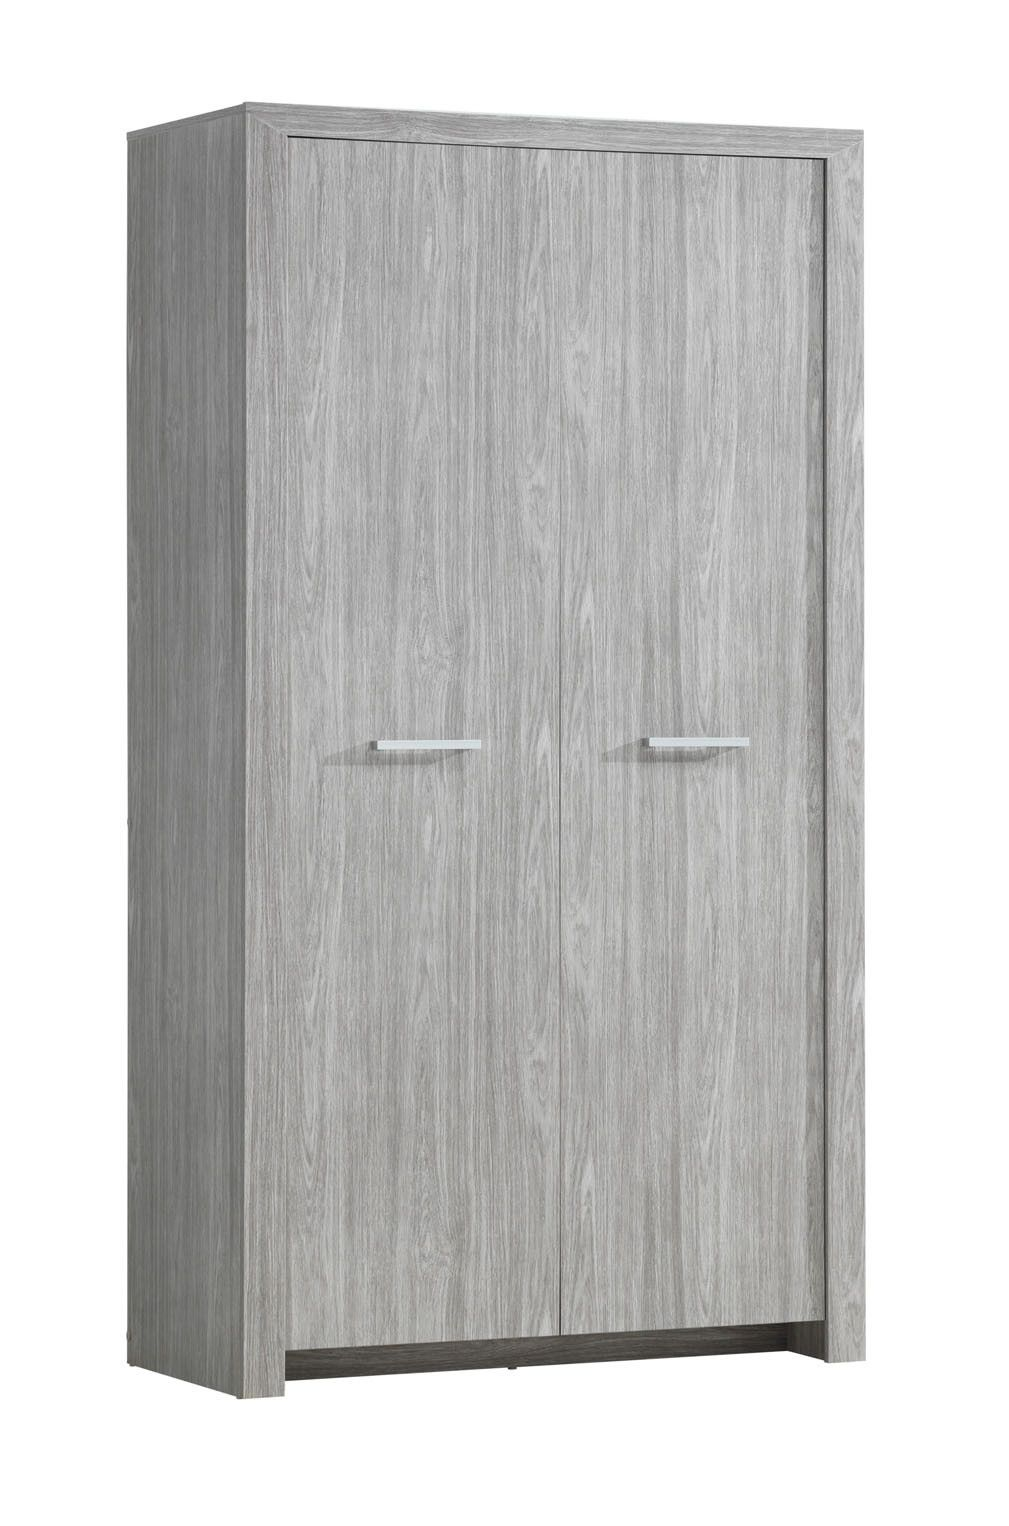 armoire penderie 2 portes ch ne gris sonora. Black Bedroom Furniture Sets. Home Design Ideas